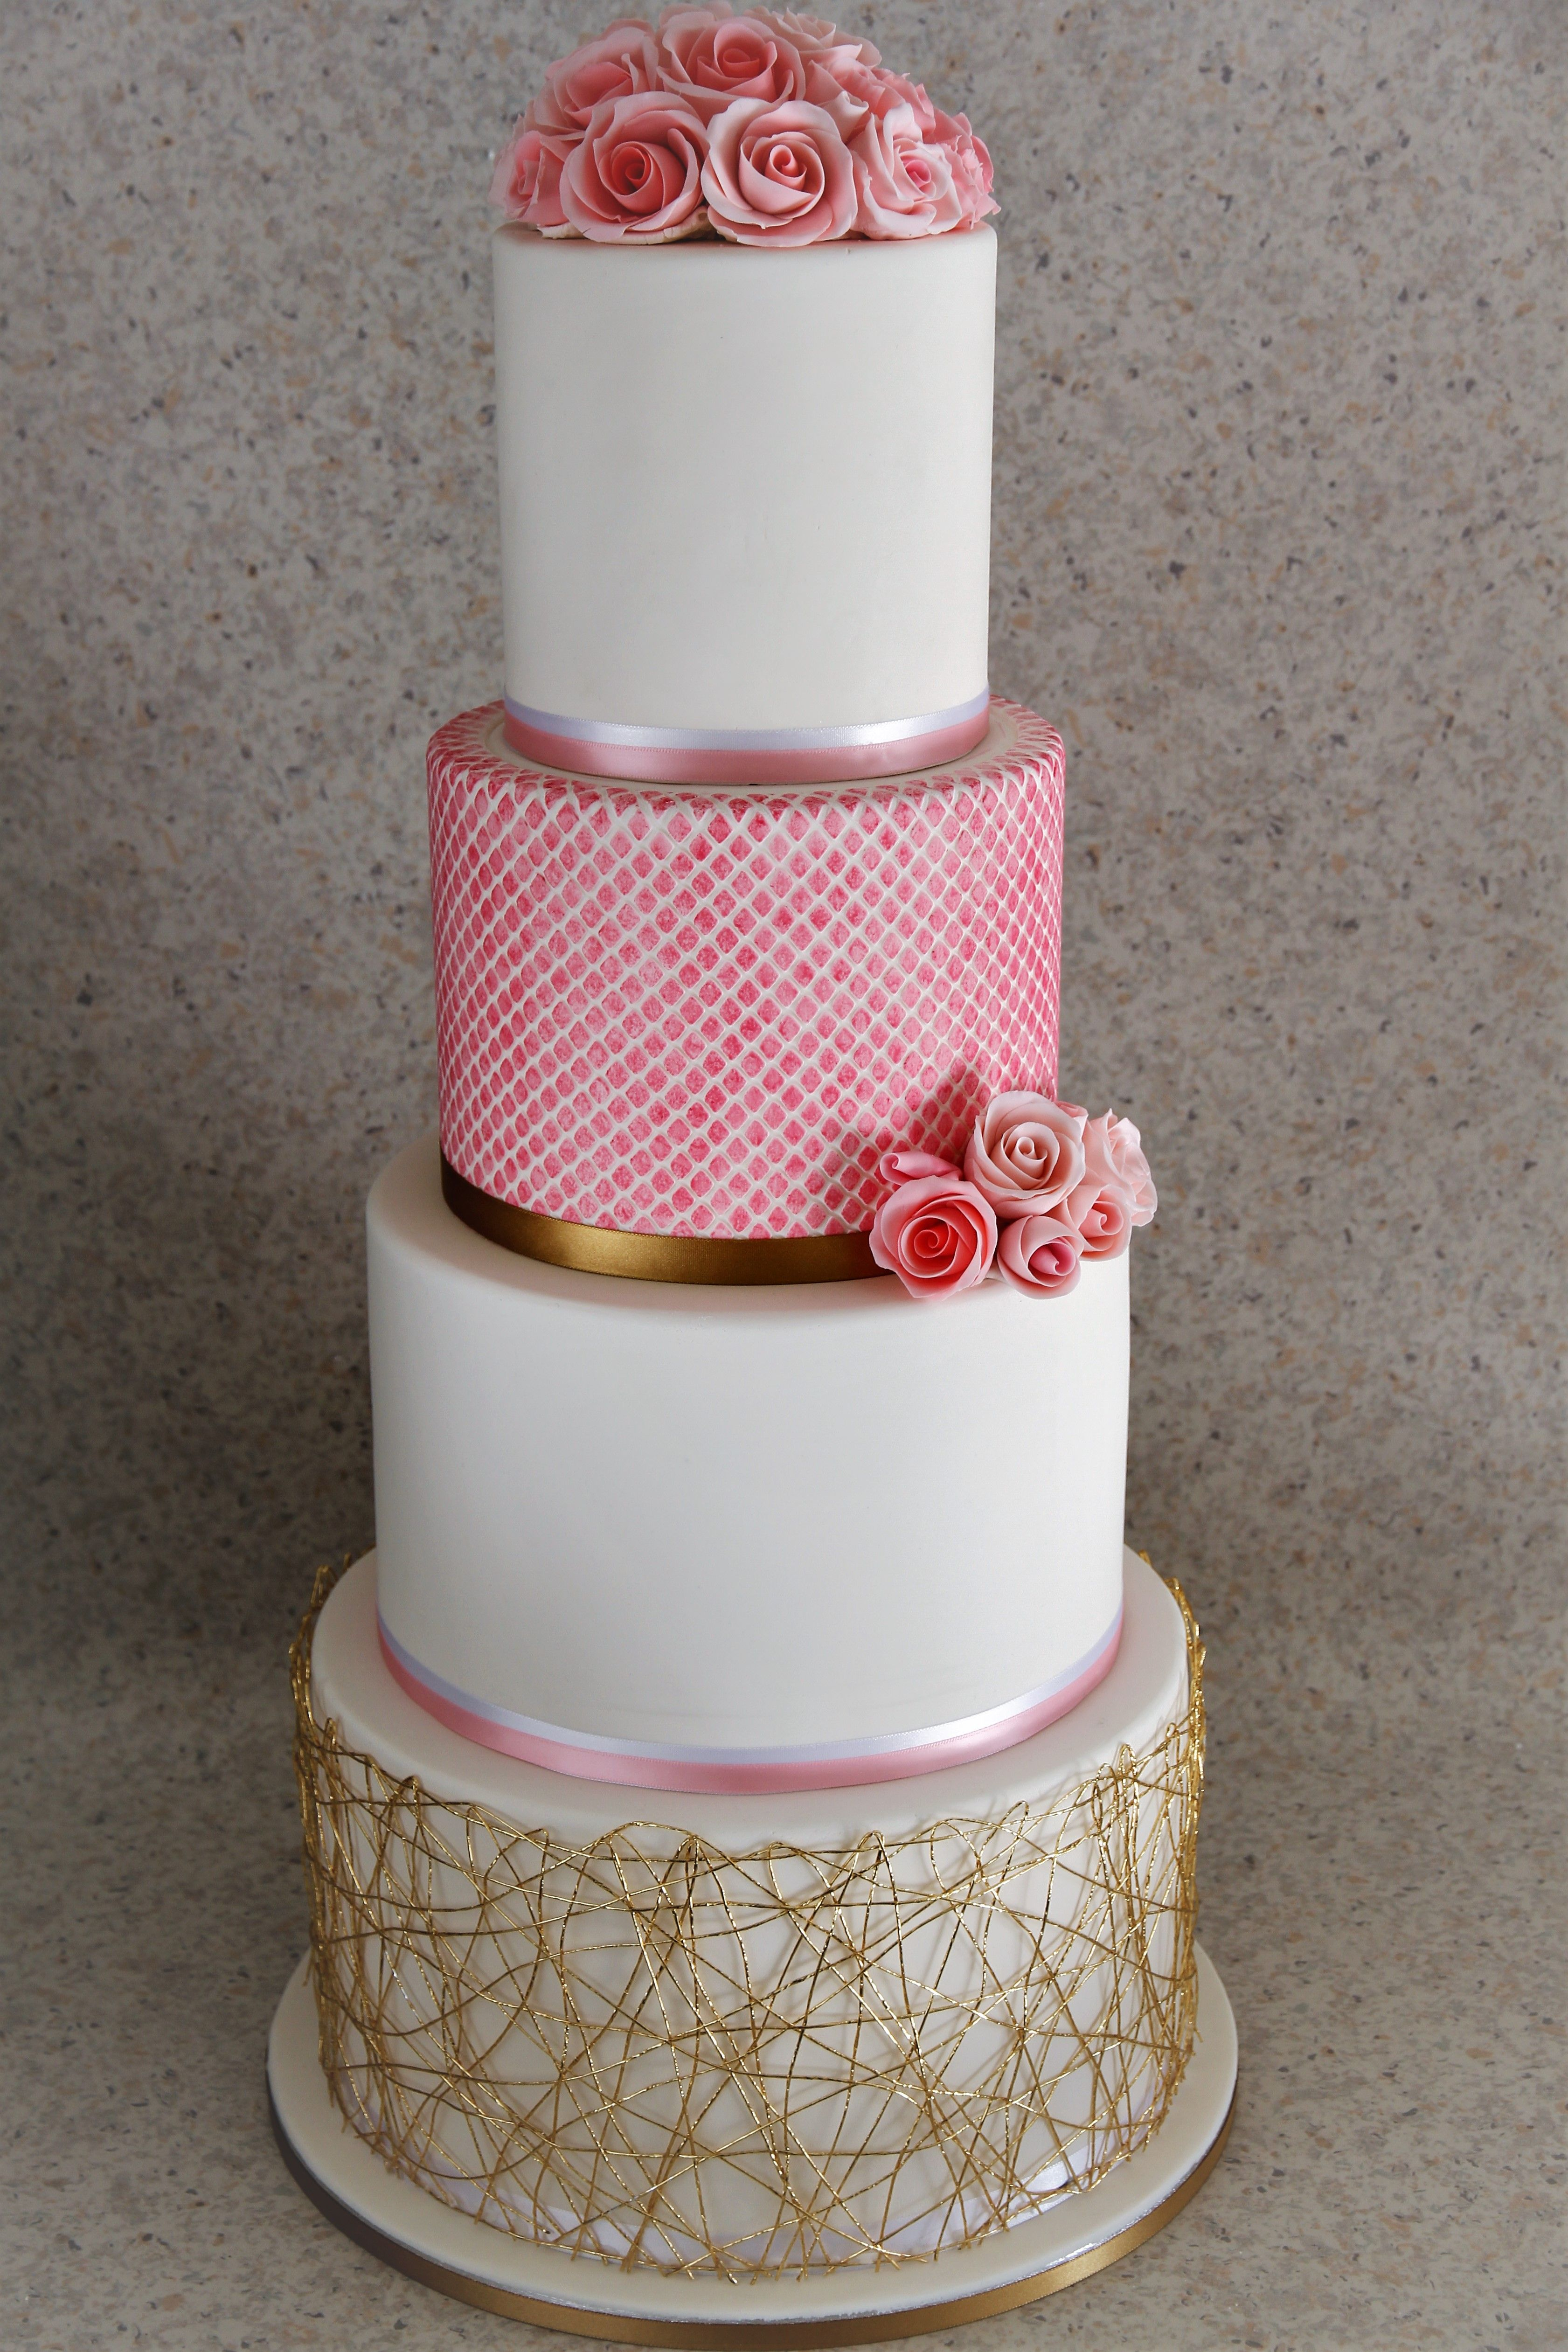 Our Cakes | Unreal Wedding Cakes - Brisbane | Wedding cakes ...